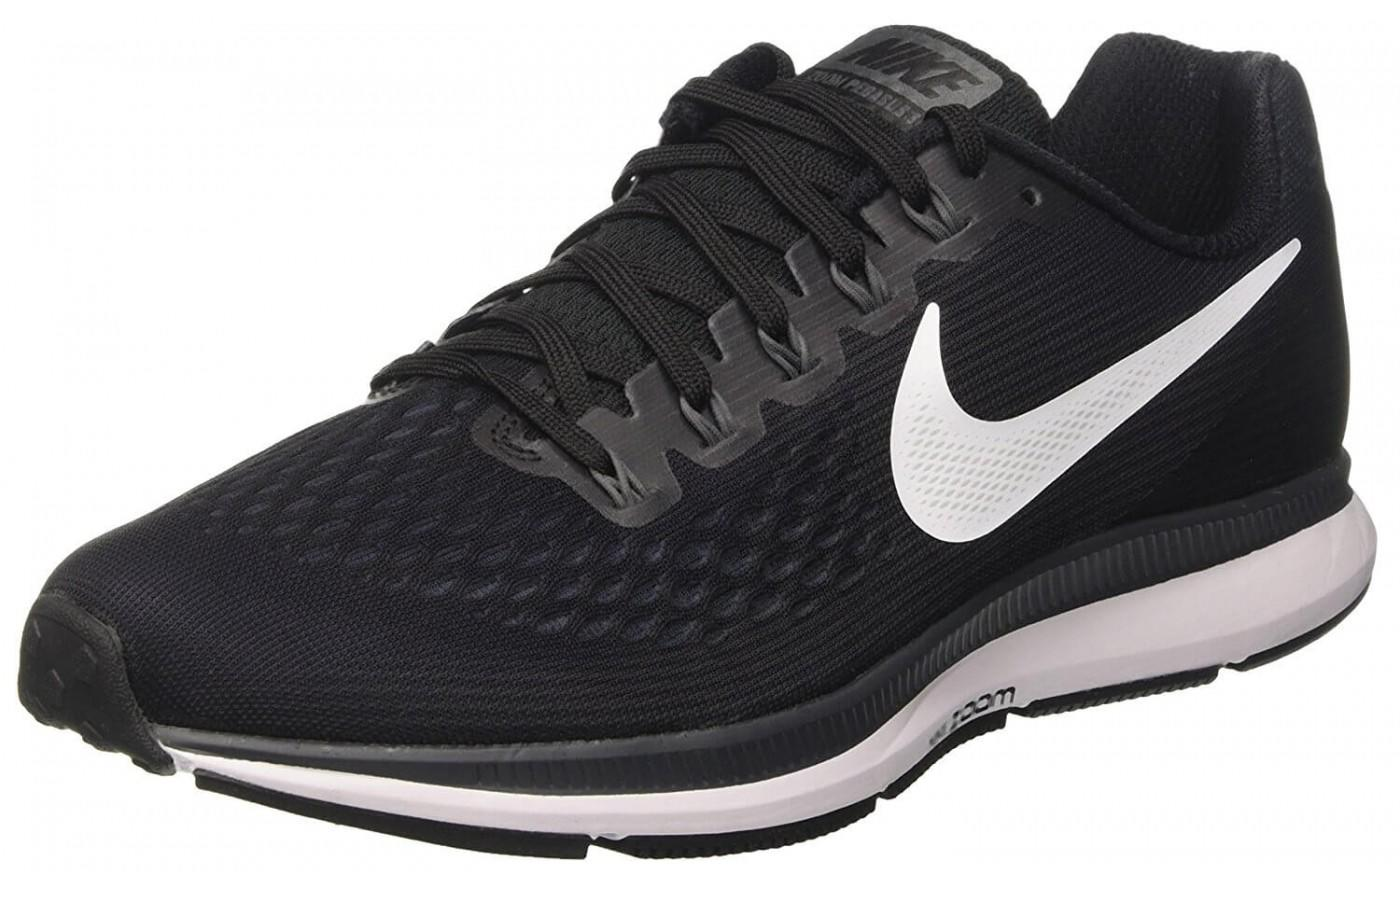 the upper of the Nike Air Zoom Pegasus 34 is made of breathable Flymesh ... 40053d66b